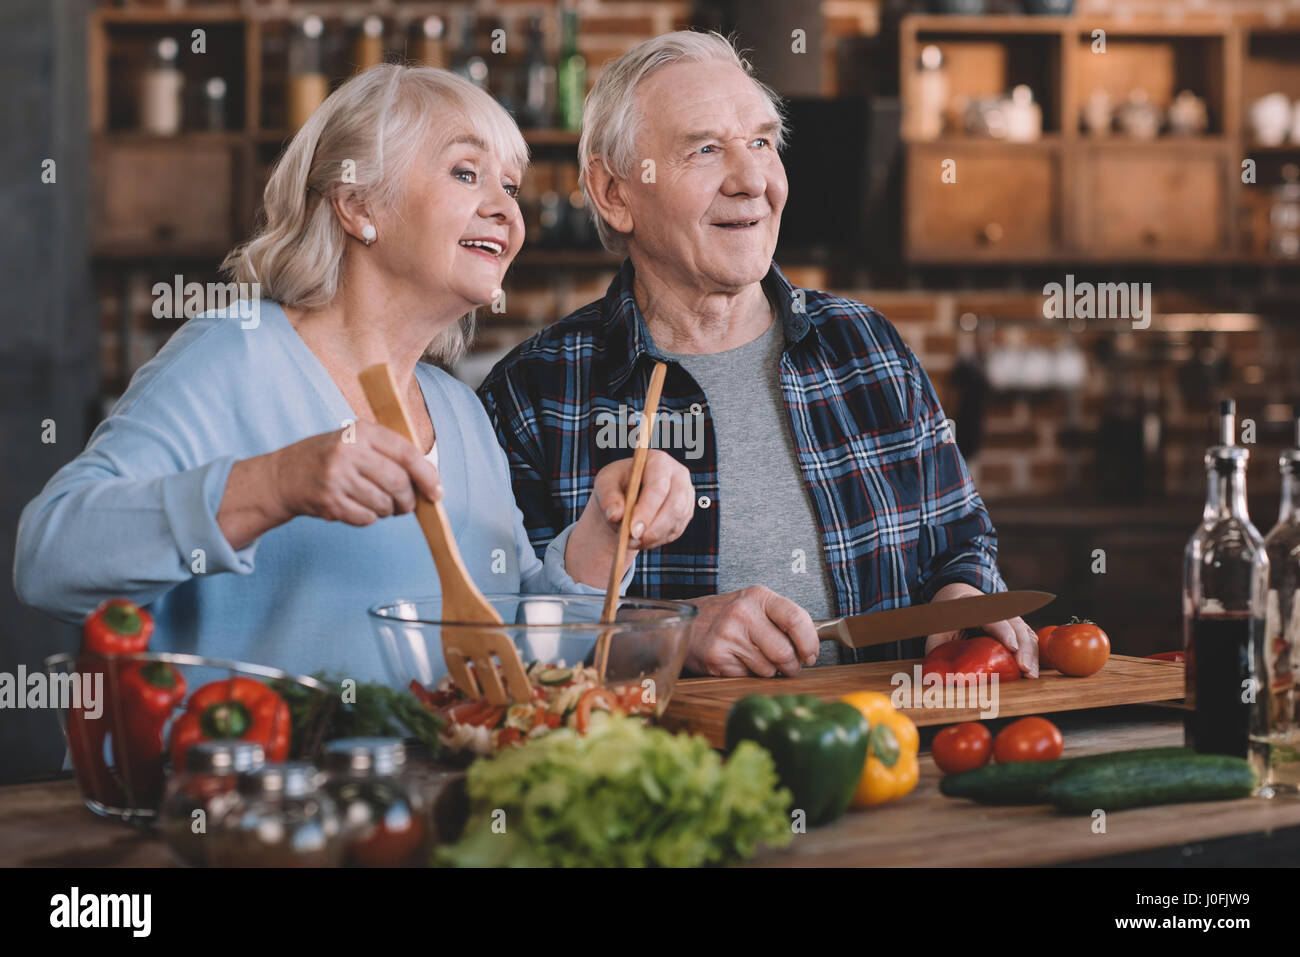 portrait of senior couple looking away while cooking together - Stock Image